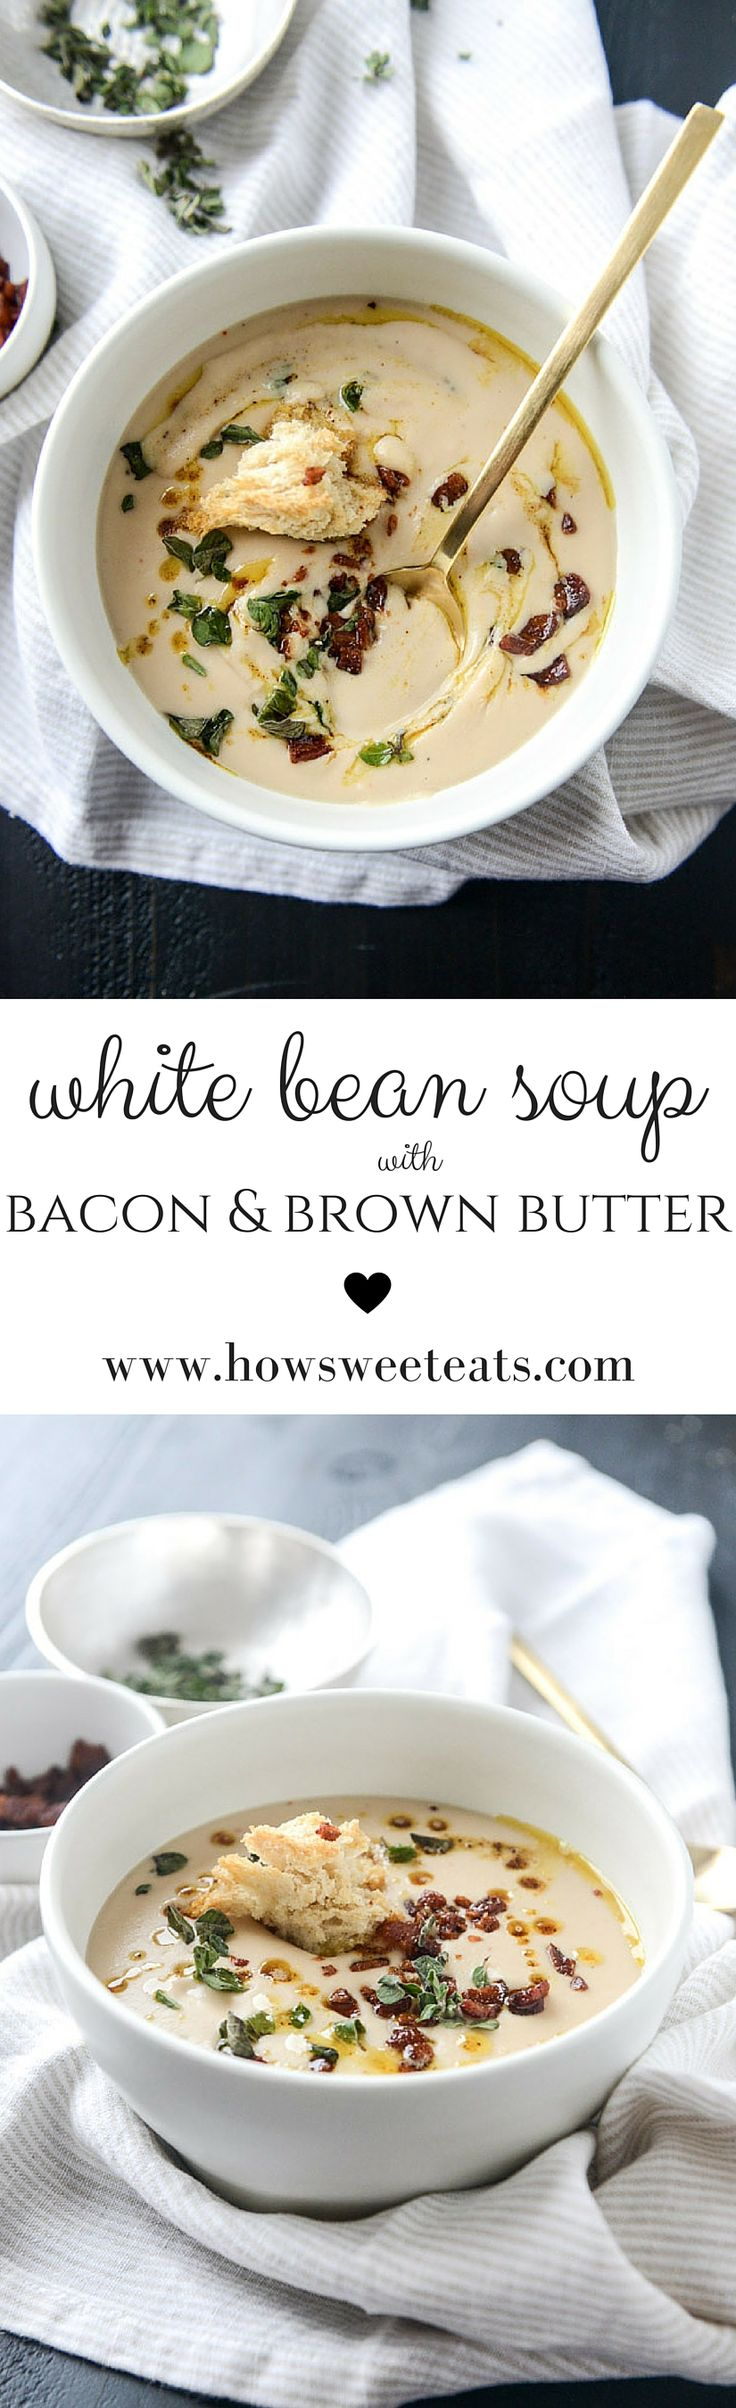 White Bean Soup with Bacon by @howsweeteats I howsweeteats.com